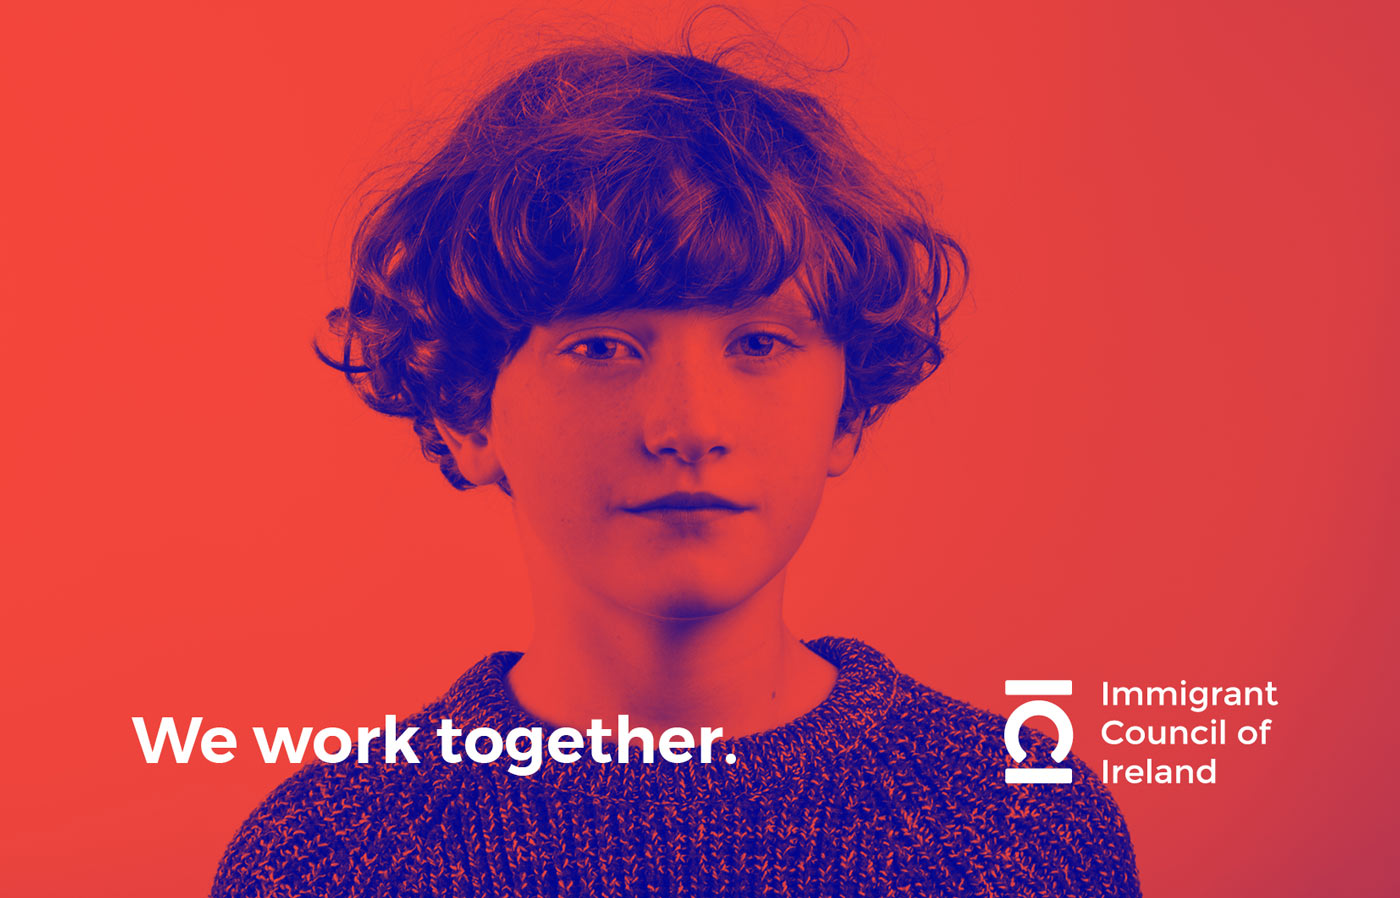 Logo design and photography production for the Immigrant Council of Ireland featuring a young boy in blue and red.